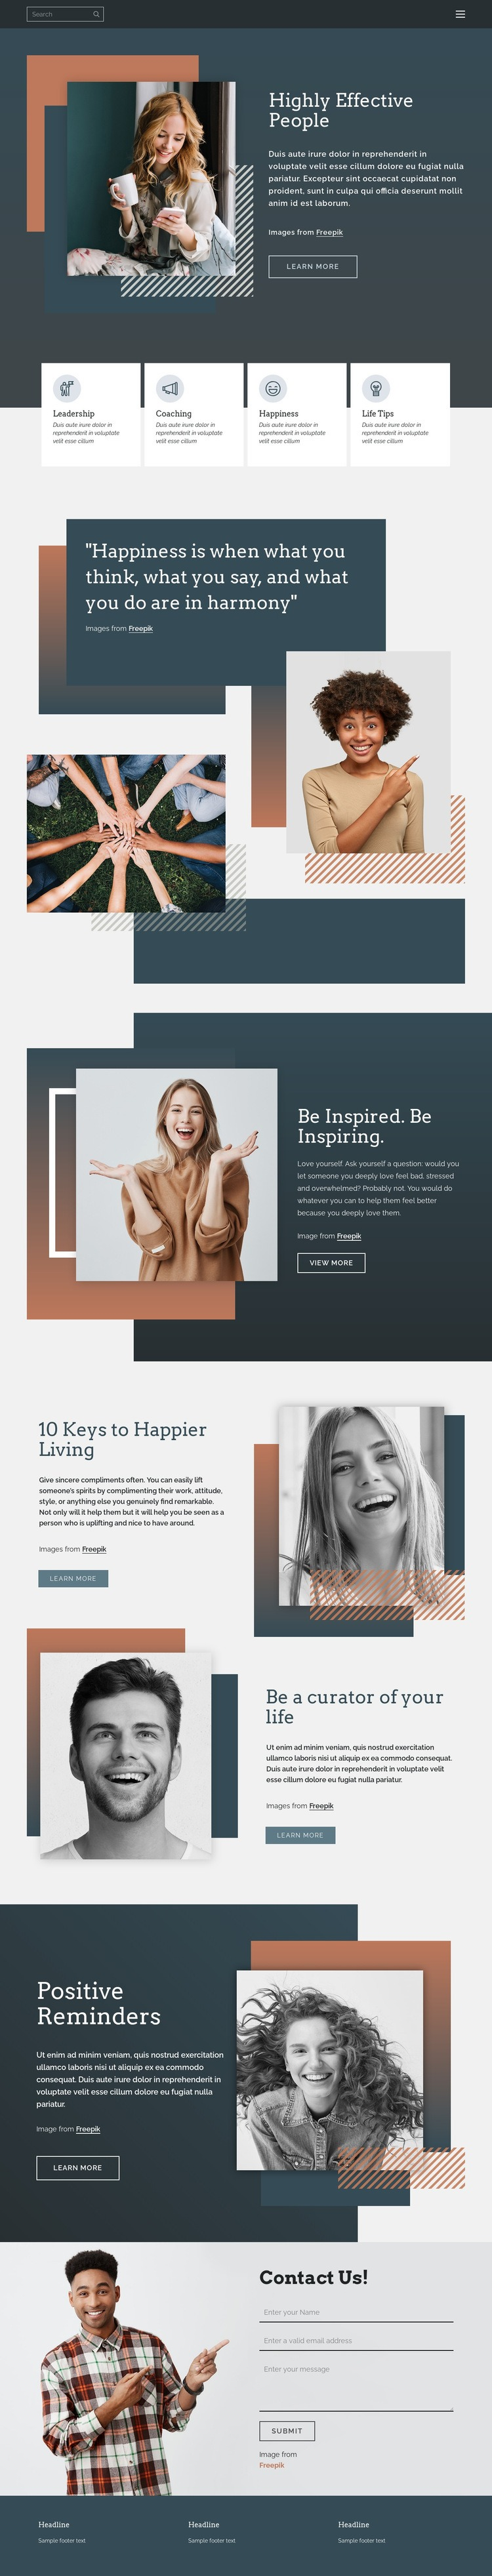 How to be successful in life Web Page Design